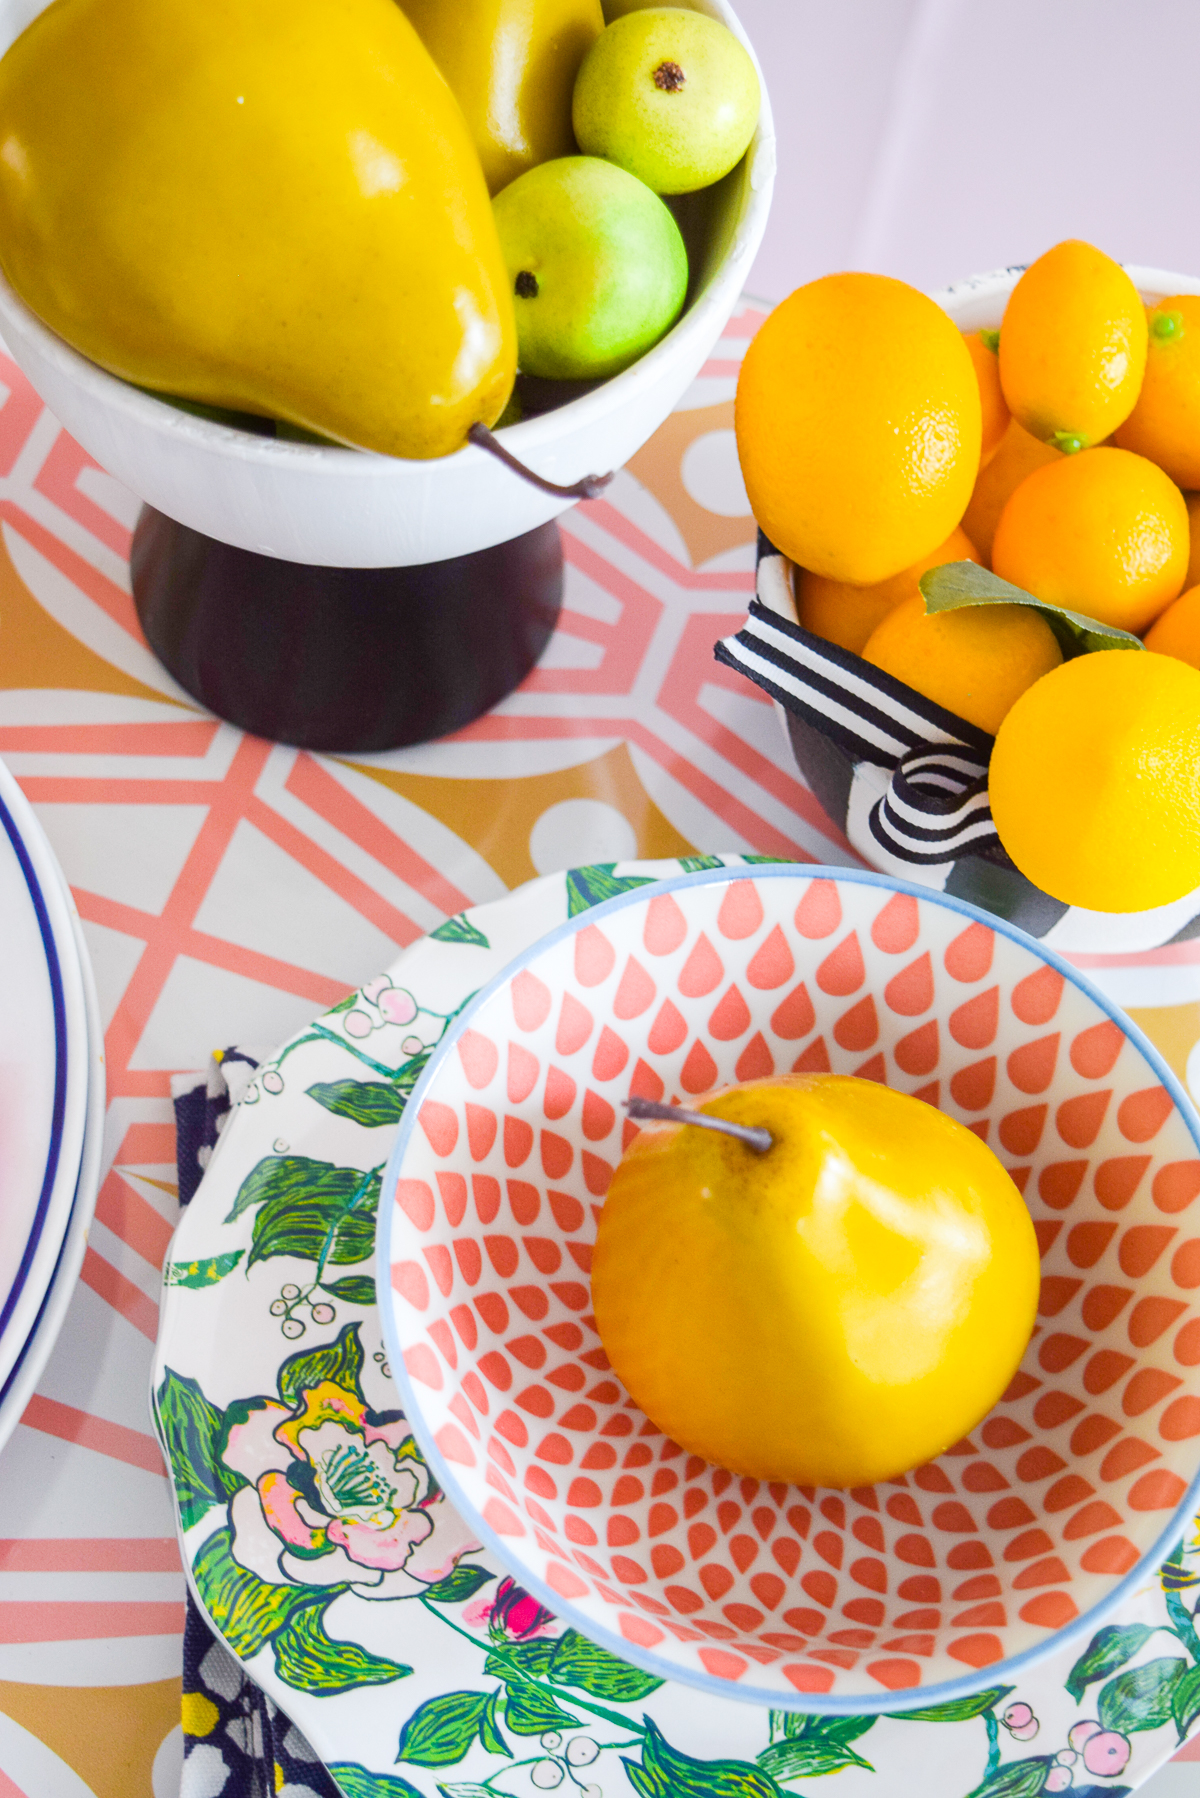 fruit in a bowl on a sideboard